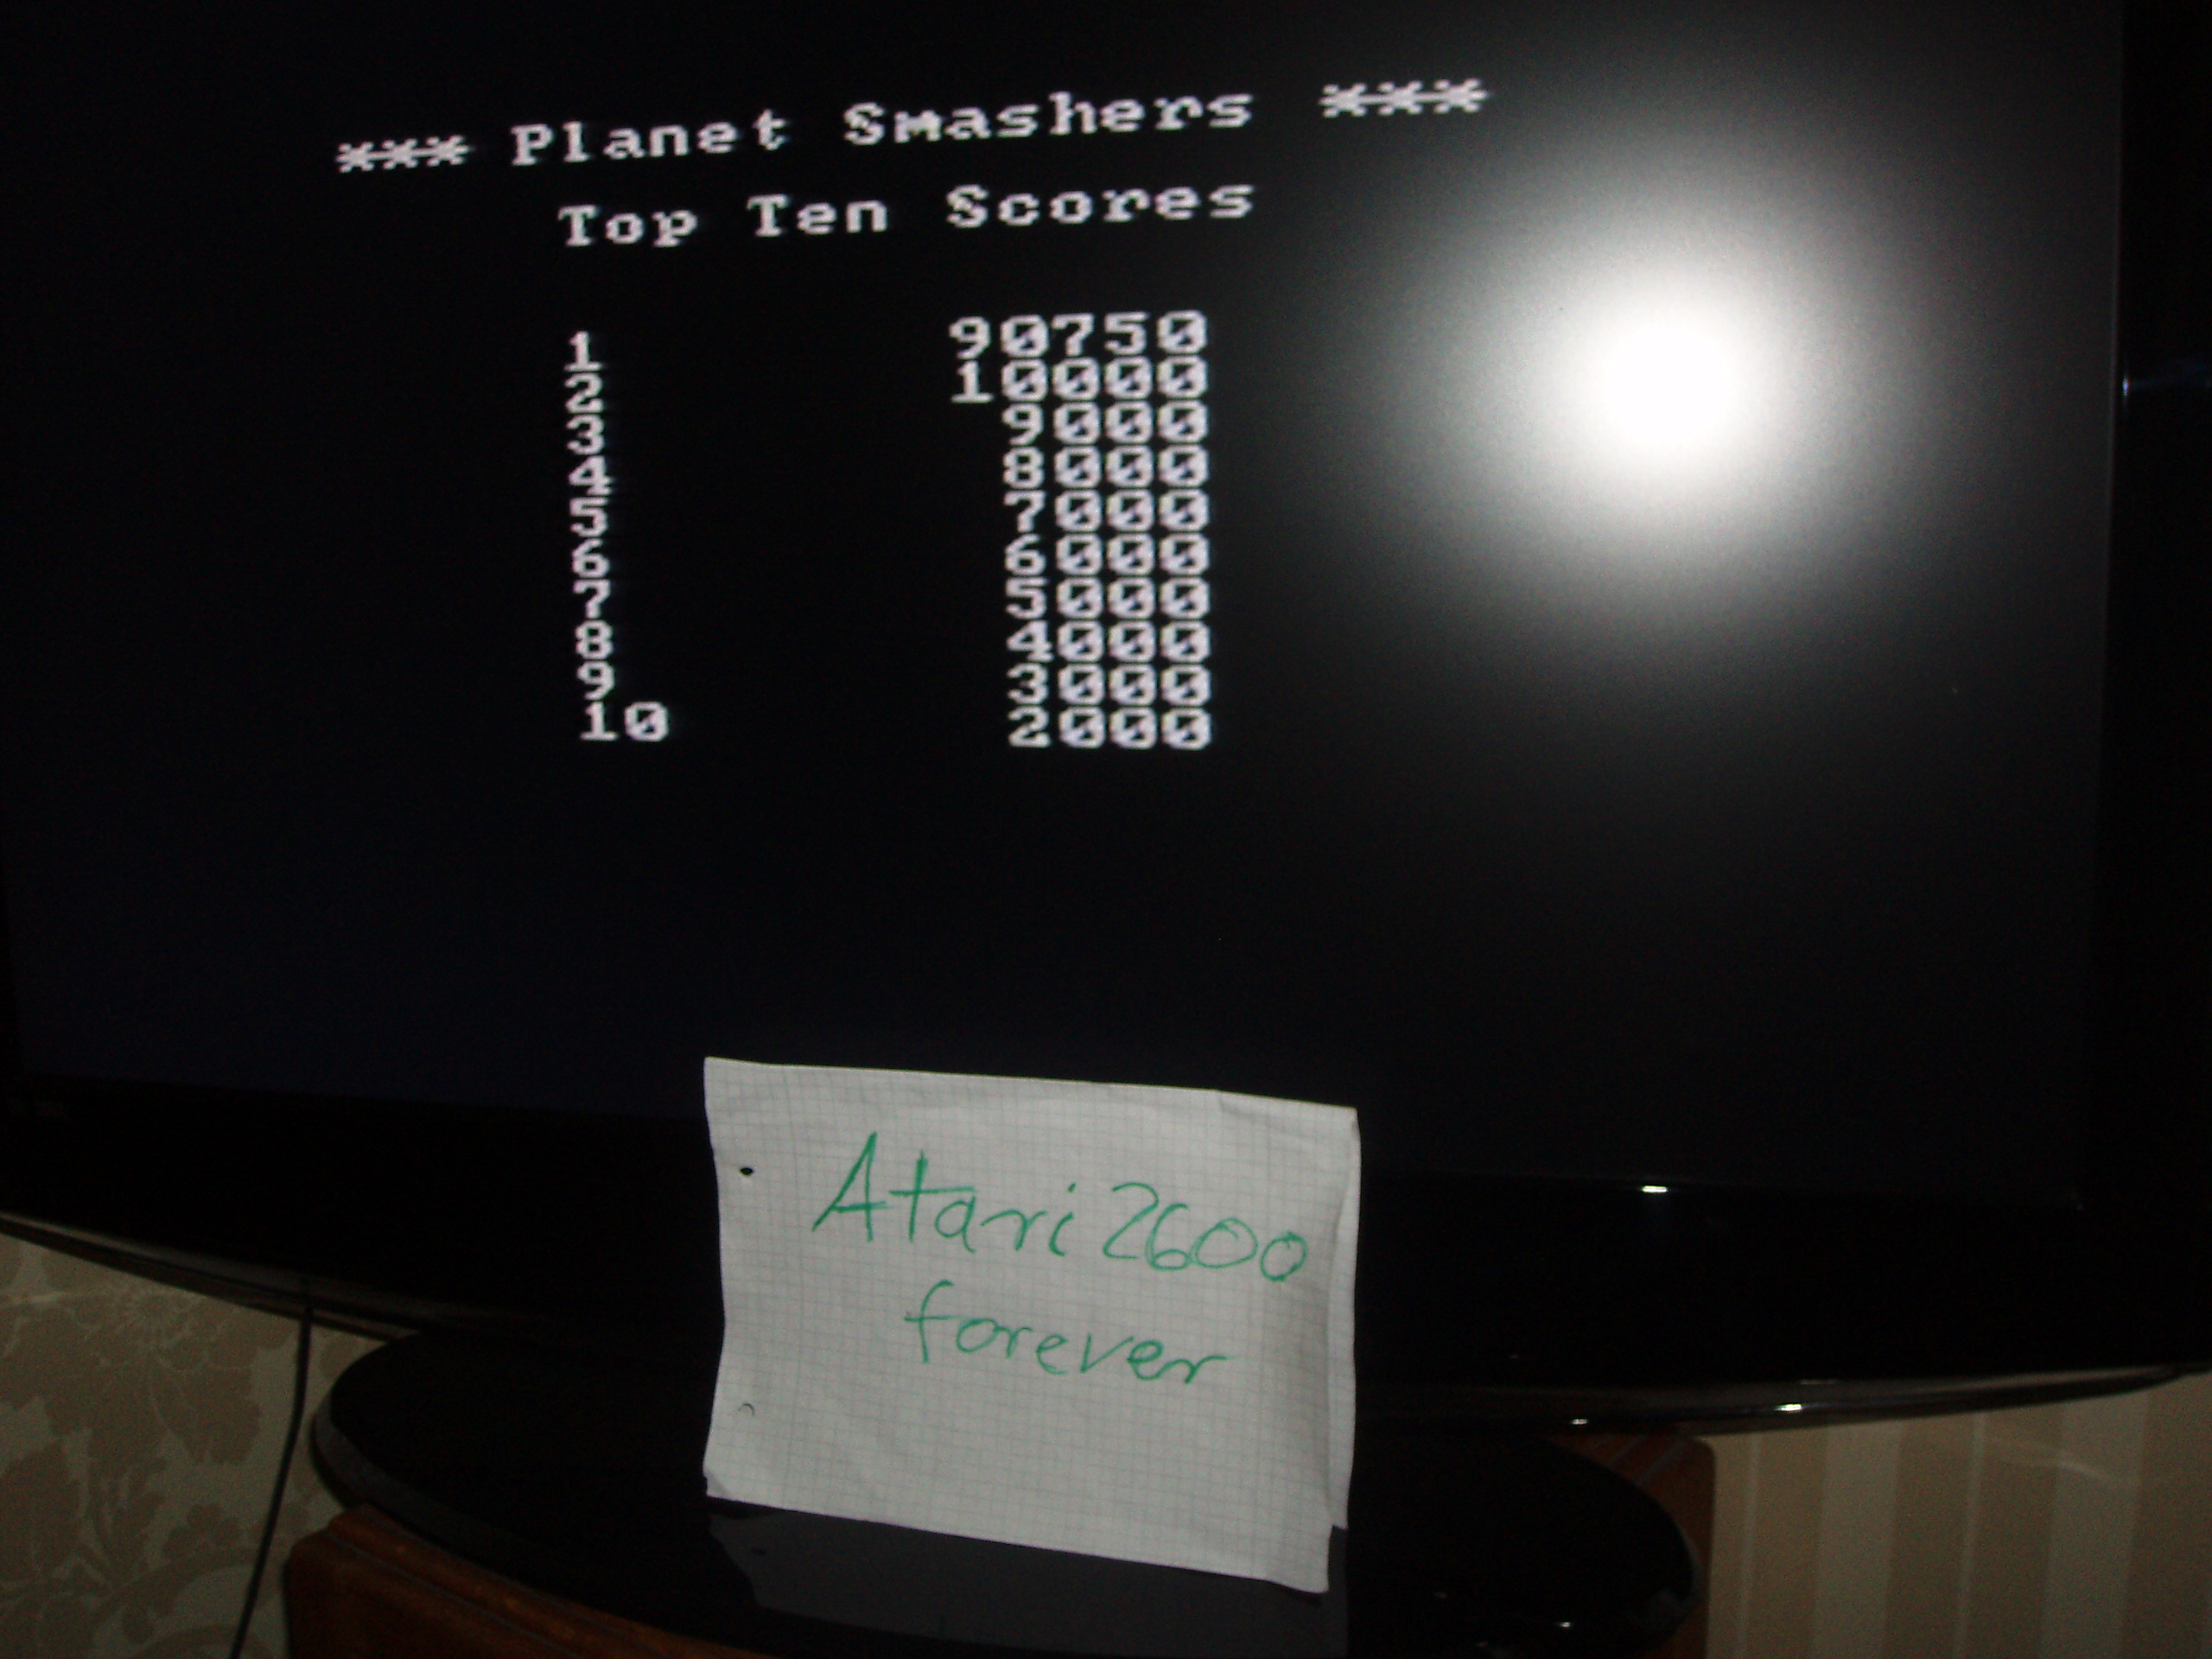 Planet Smashers: Easy 90,750 points